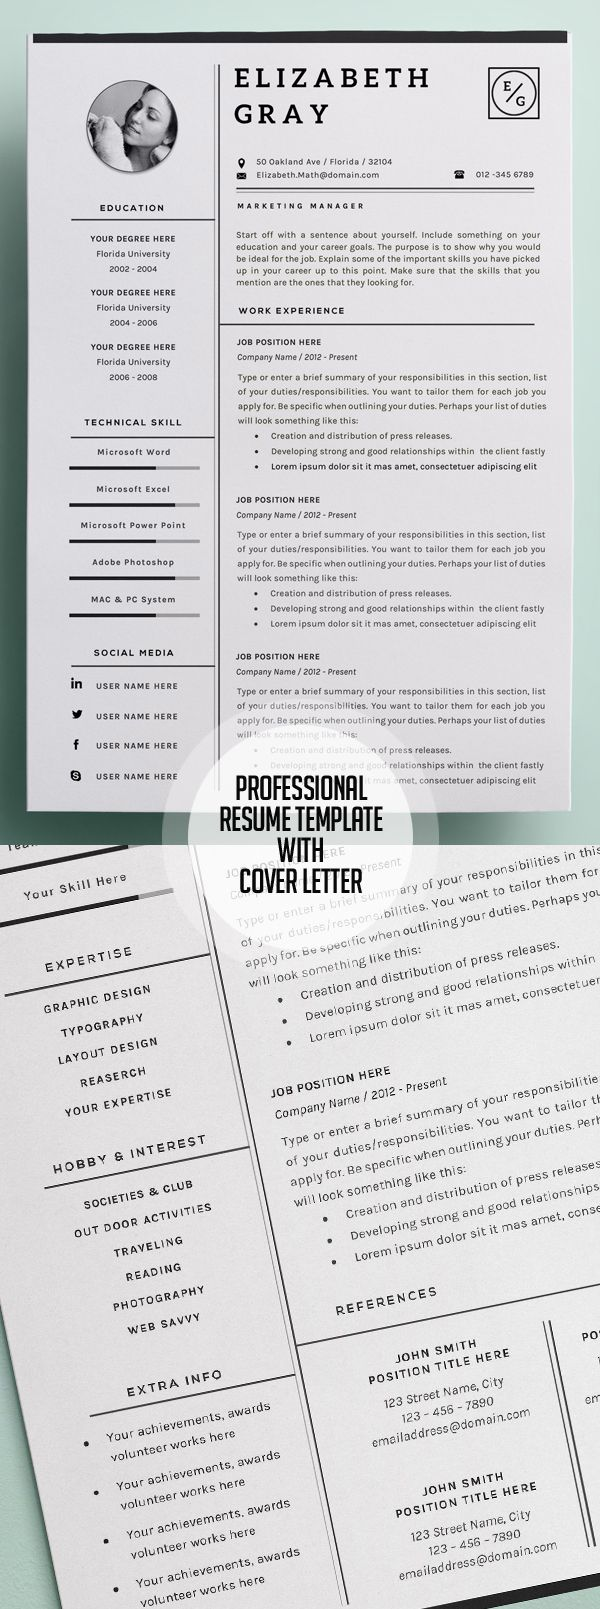 Opposenewapstandardsus  Ravishing  Resume Ideas On Pinterest  Resume Resume Templates And  With Engaging Professional And Modern Resume Template With Page Cover Cvtemplate With Astounding Retail Manager Resume Examples Also Supervisor Resume Sample In Addition Executive Assistant Resume Objective And Education Section On Resume As Well As Sample Qa Resume Additionally Resume Template Samples From Pinterestcom With Opposenewapstandardsus  Engaging  Resume Ideas On Pinterest  Resume Resume Templates And  With Astounding Professional And Modern Resume Template With Page Cover Cvtemplate And Ravishing Retail Manager Resume Examples Also Supervisor Resume Sample In Addition Executive Assistant Resume Objective From Pinterestcom